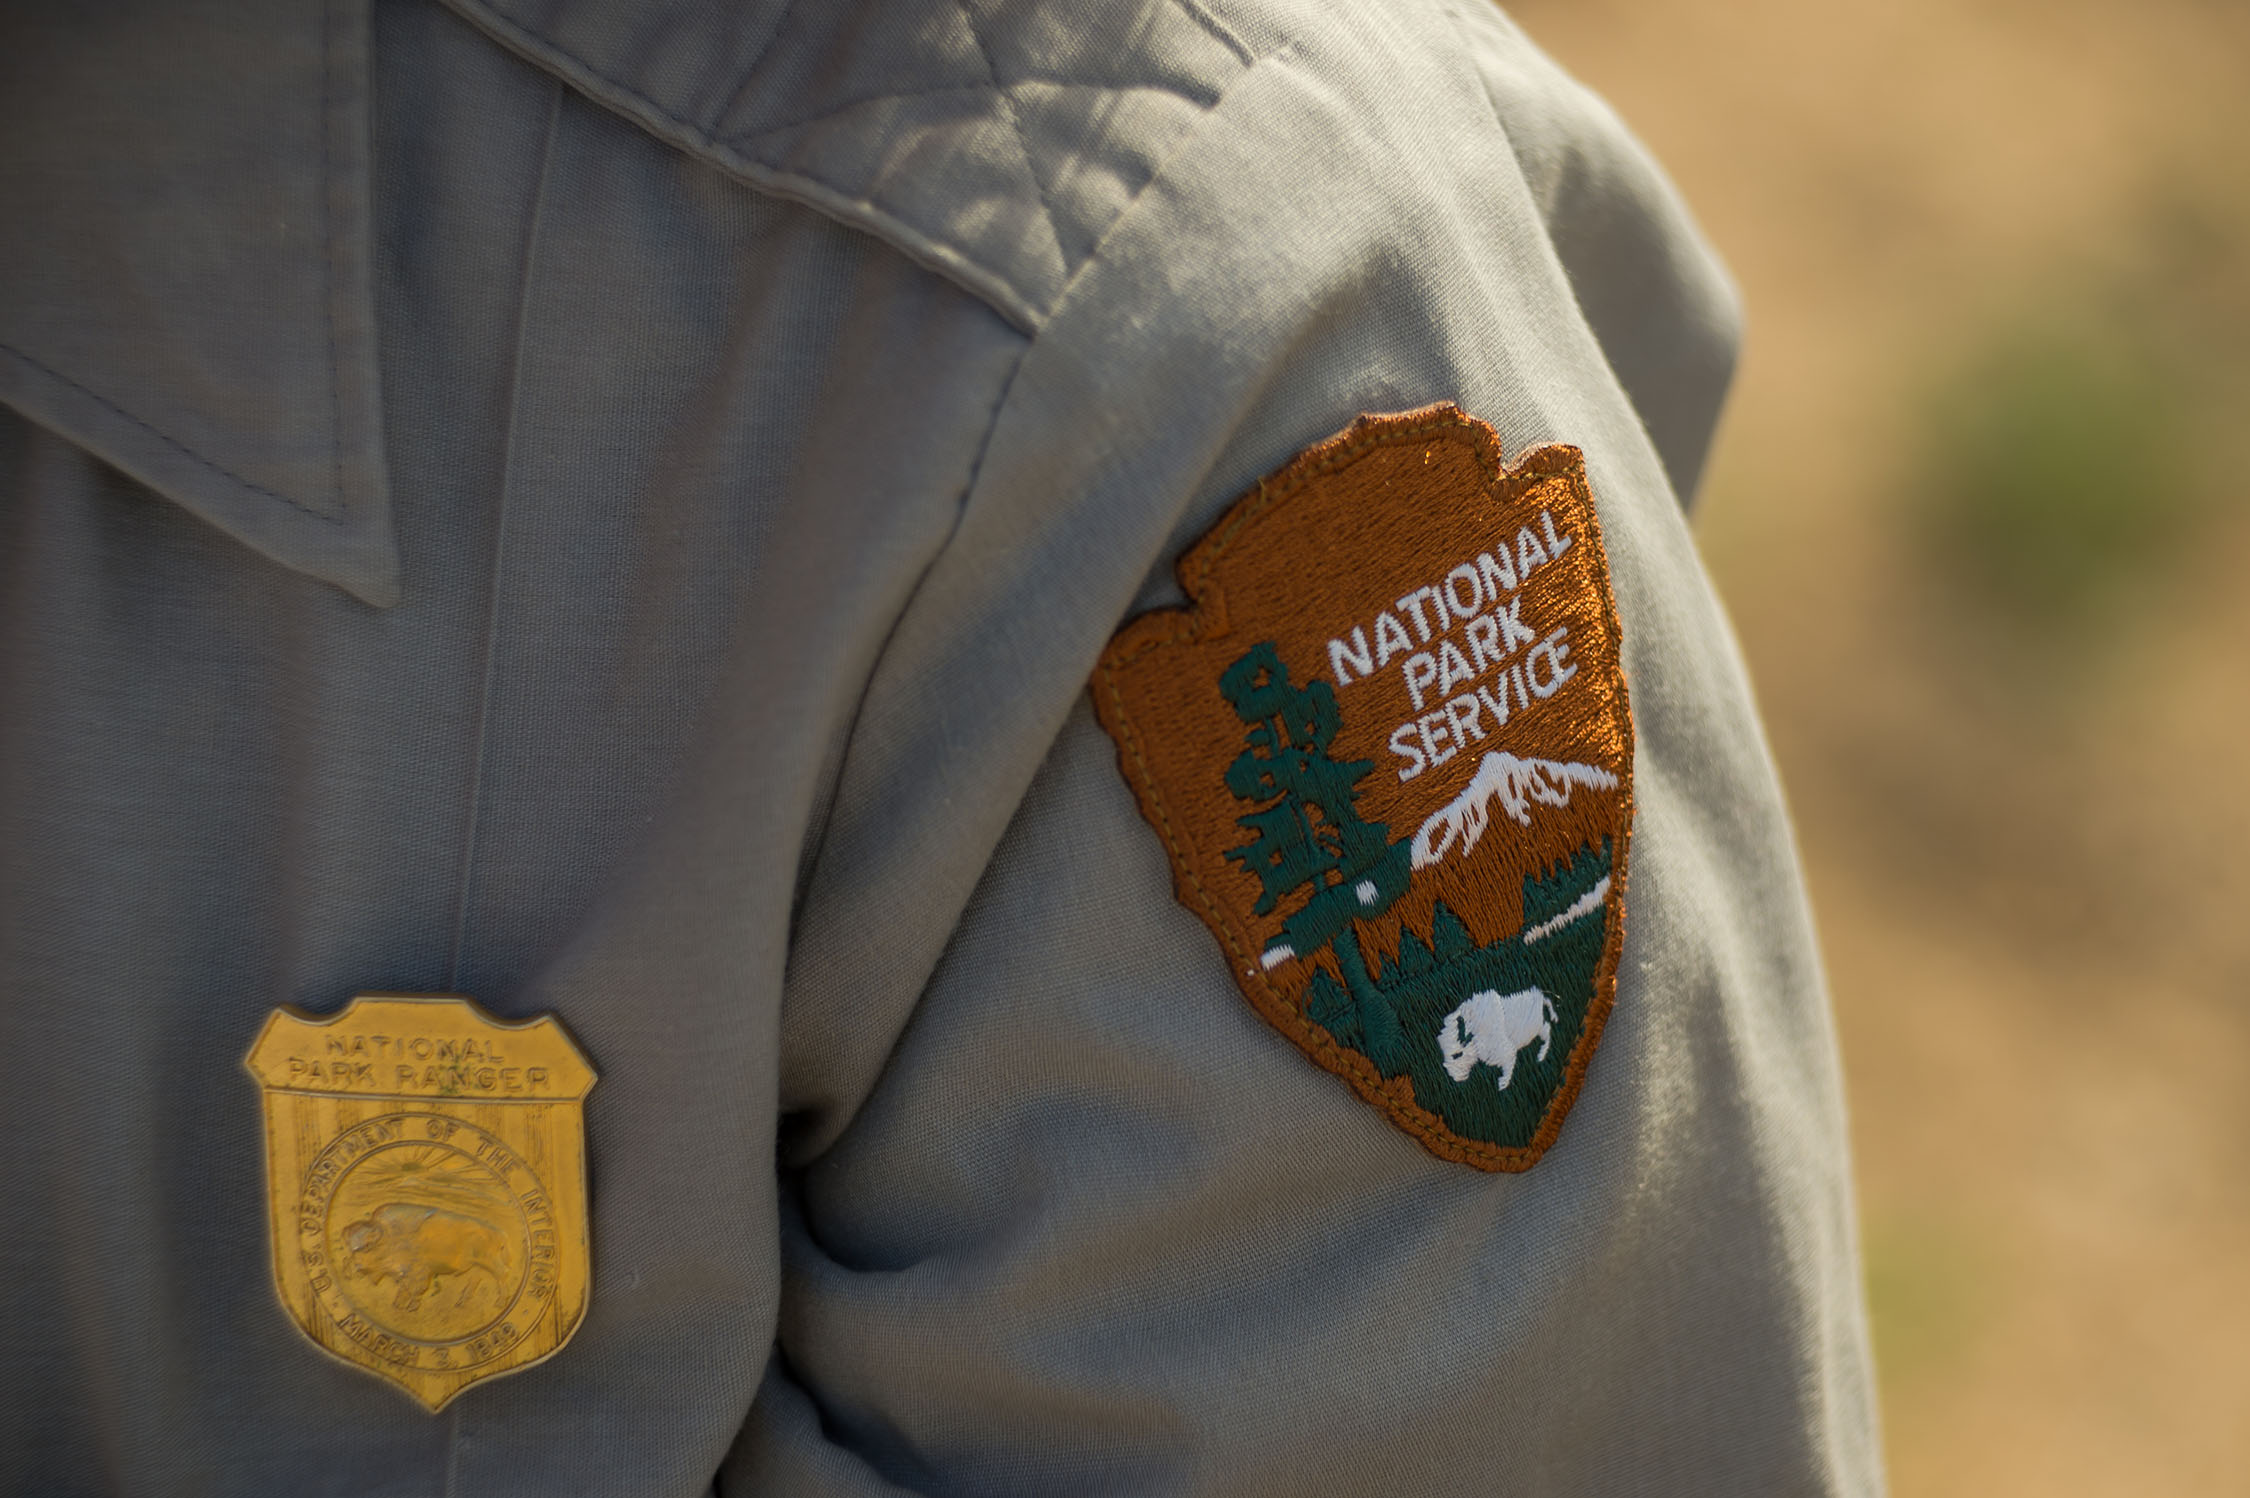 Rogue National Park Service Twitter account says it's no